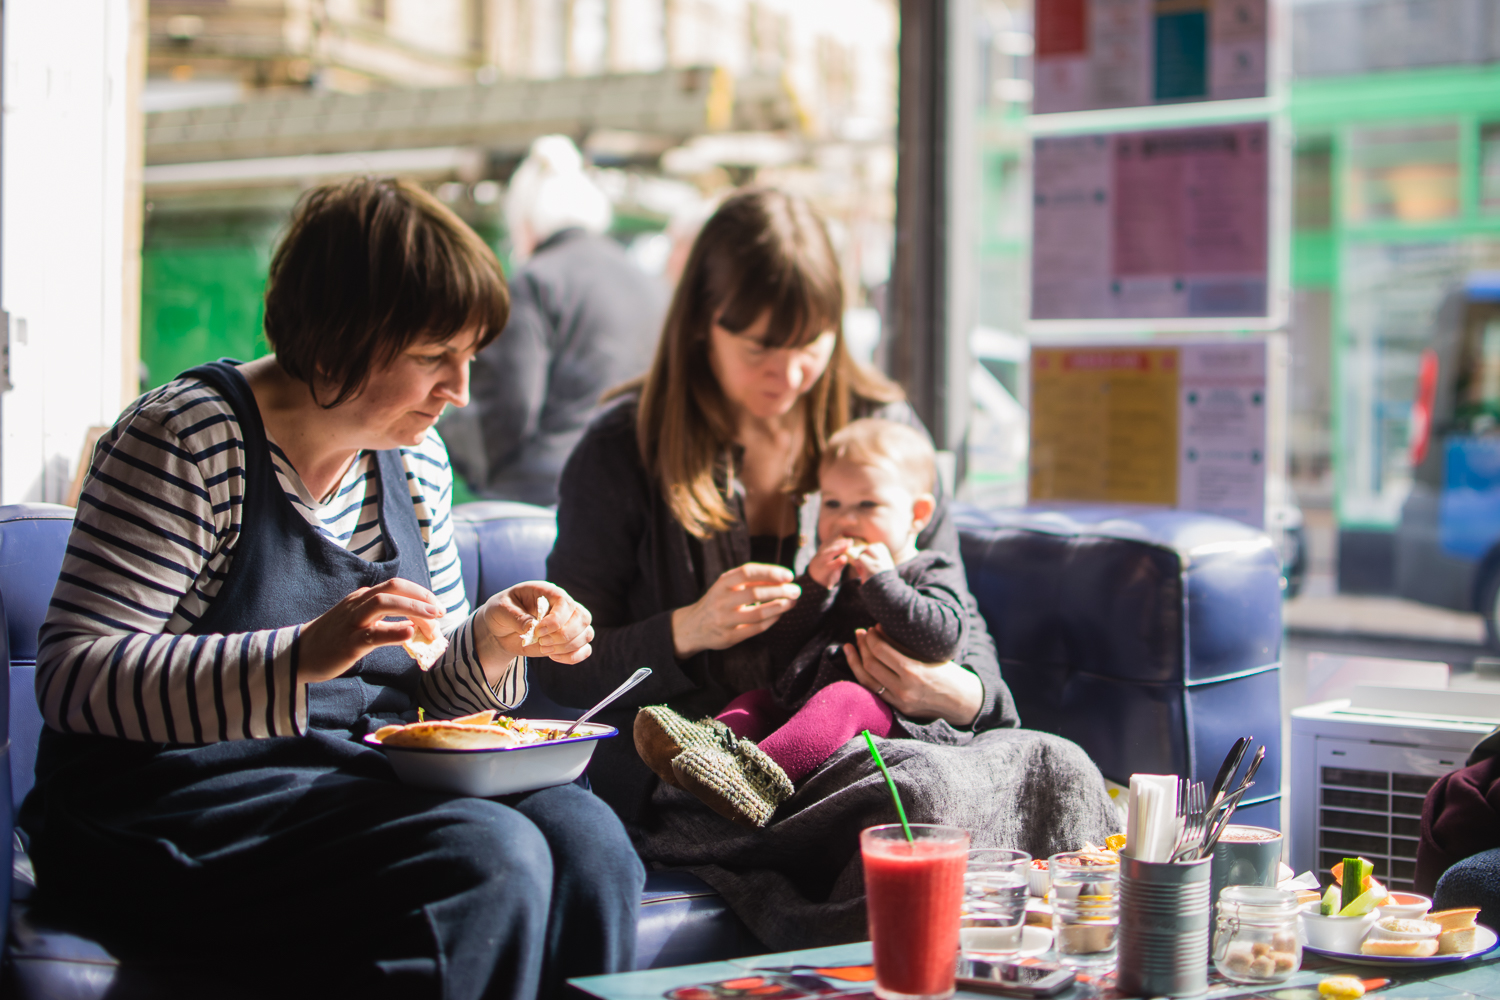 Two mothers and their baby eating out in a cafe during a day-in-